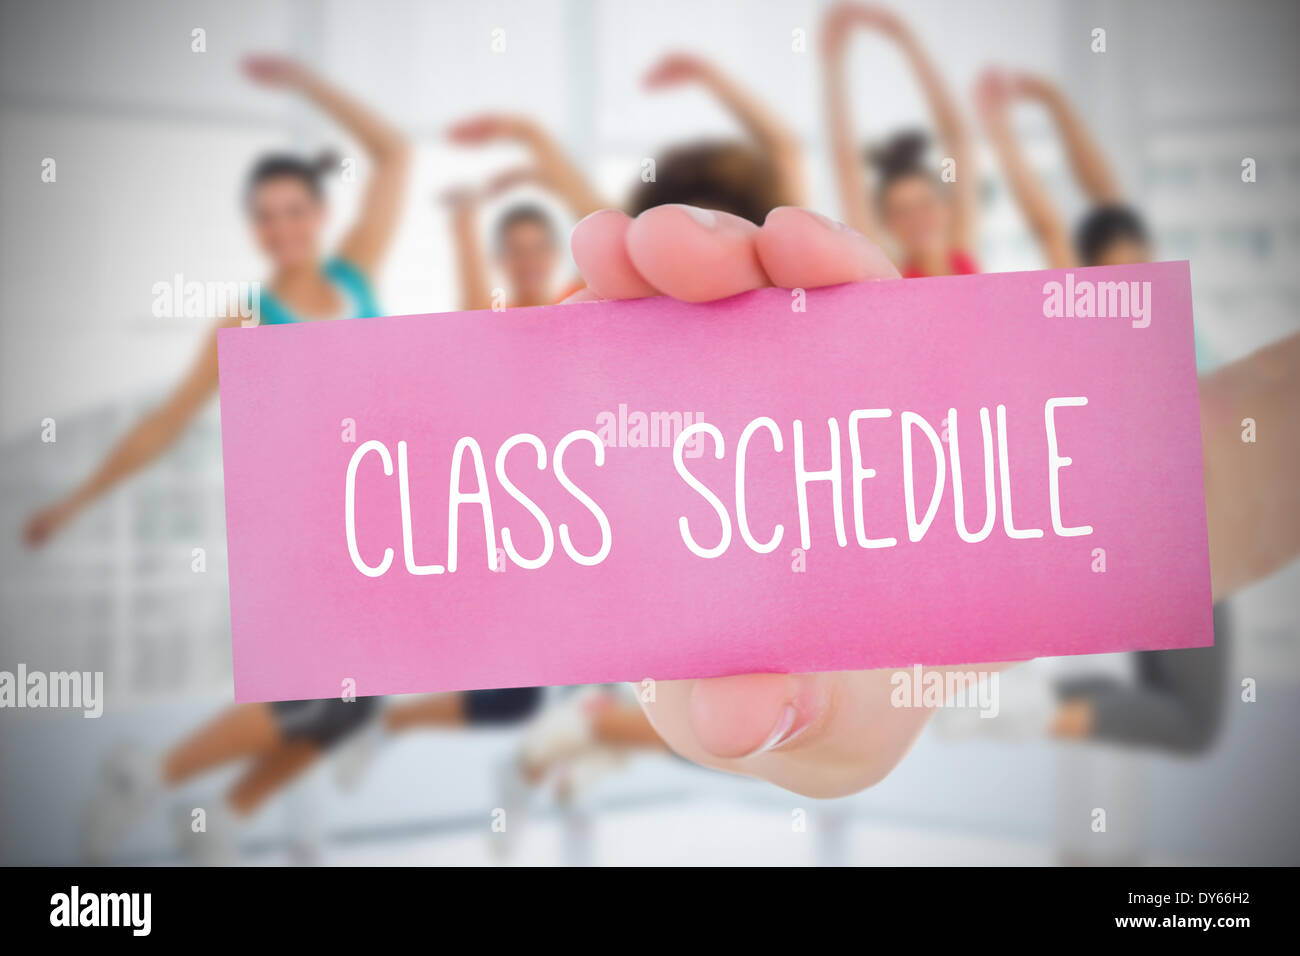 Woman holding pink card saying class schedule - Stock Image